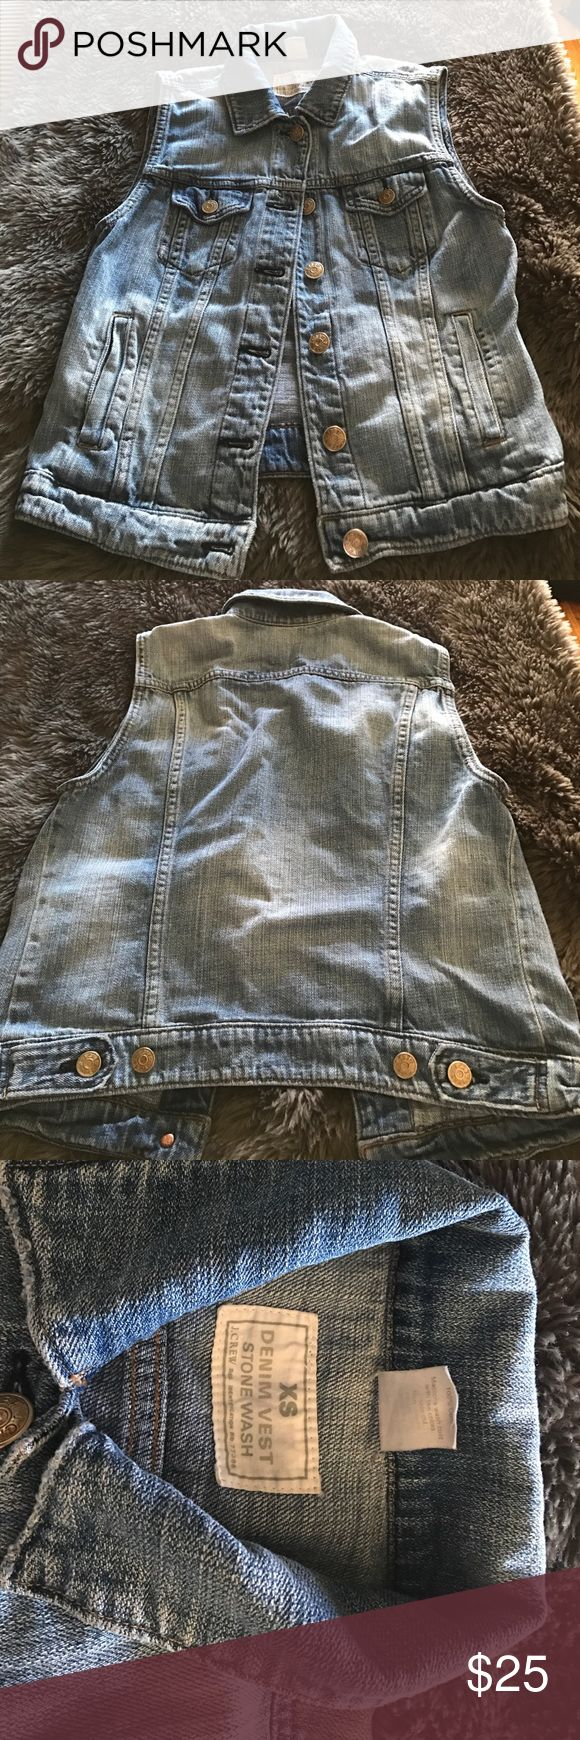 J Crew Denim Vest I am selling a used denim vest from J Crew, it is stain and hole free, I've had it for a couple of years and don't really wear it much, it's great for layering. J. Crew Jackets & Coats Vests